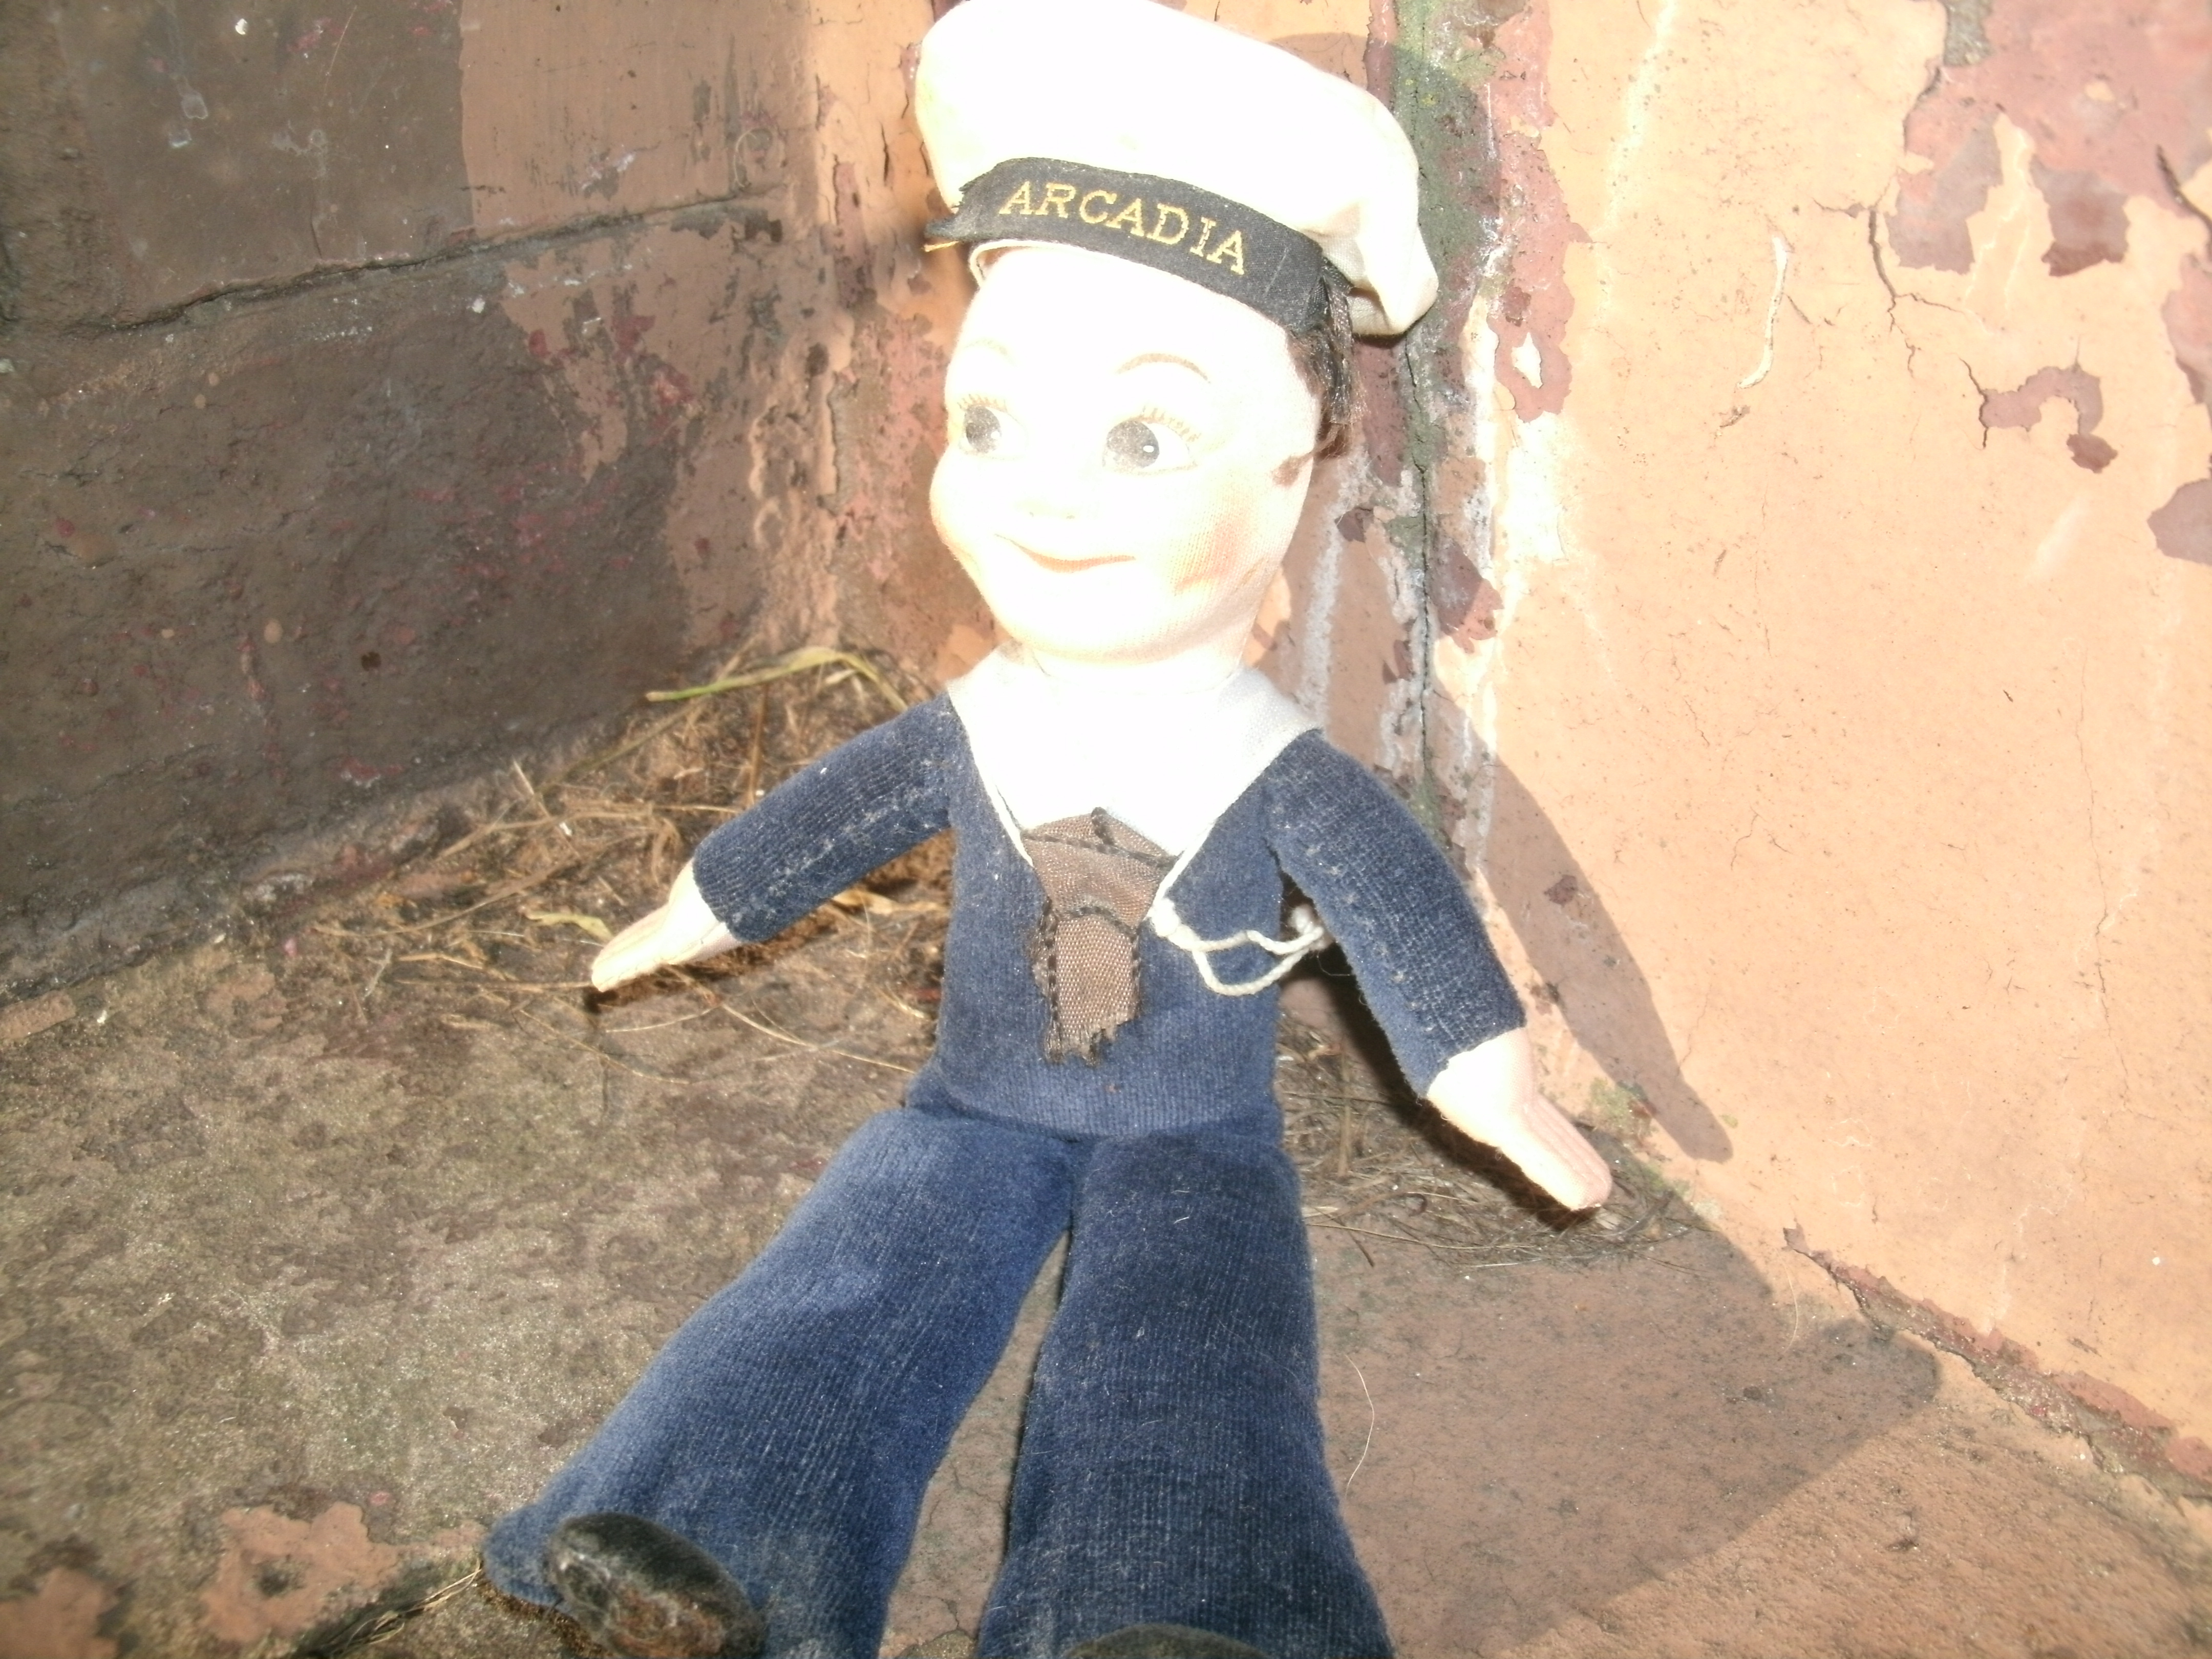 Bad Photo Monday: What shall we do with a drunken sailor?